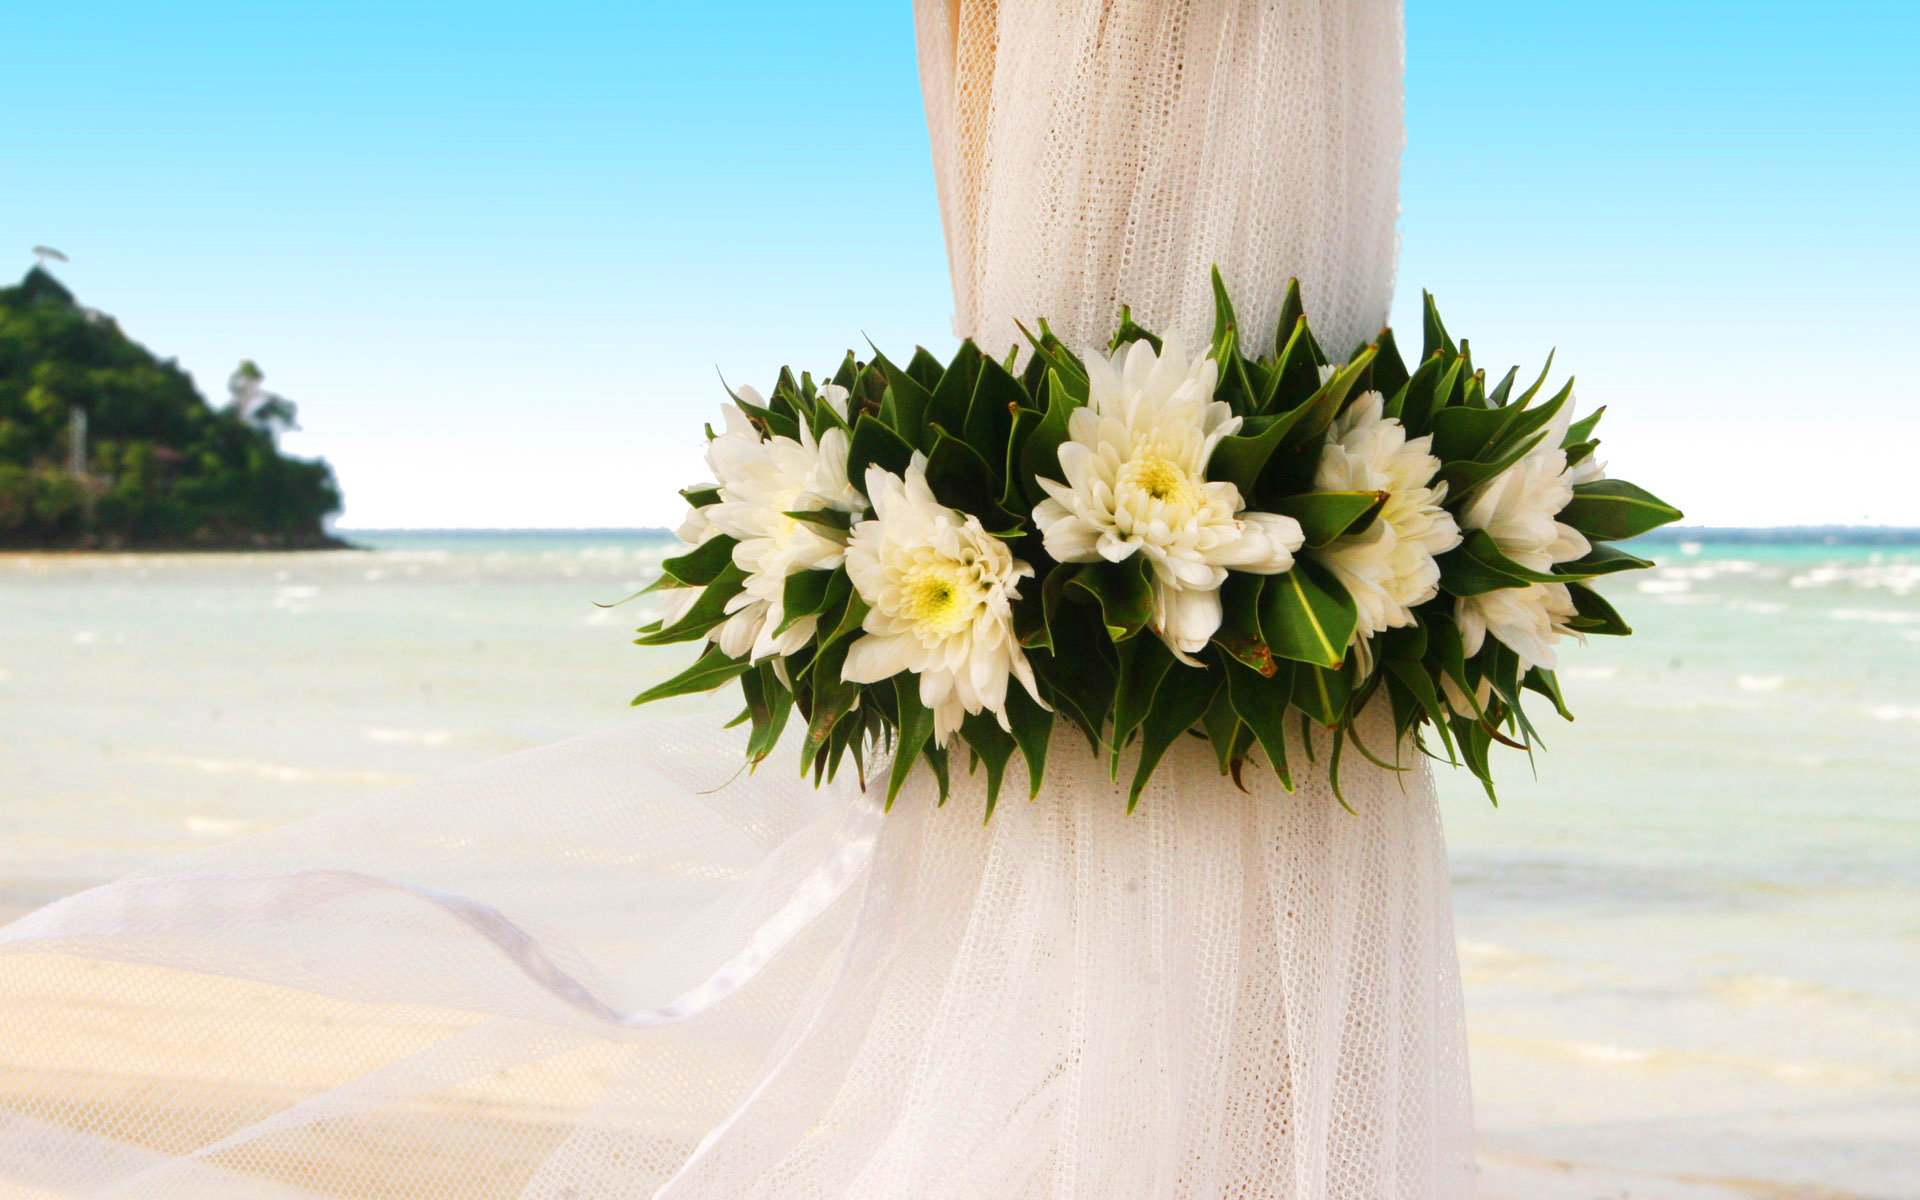 Curtain beach wedding